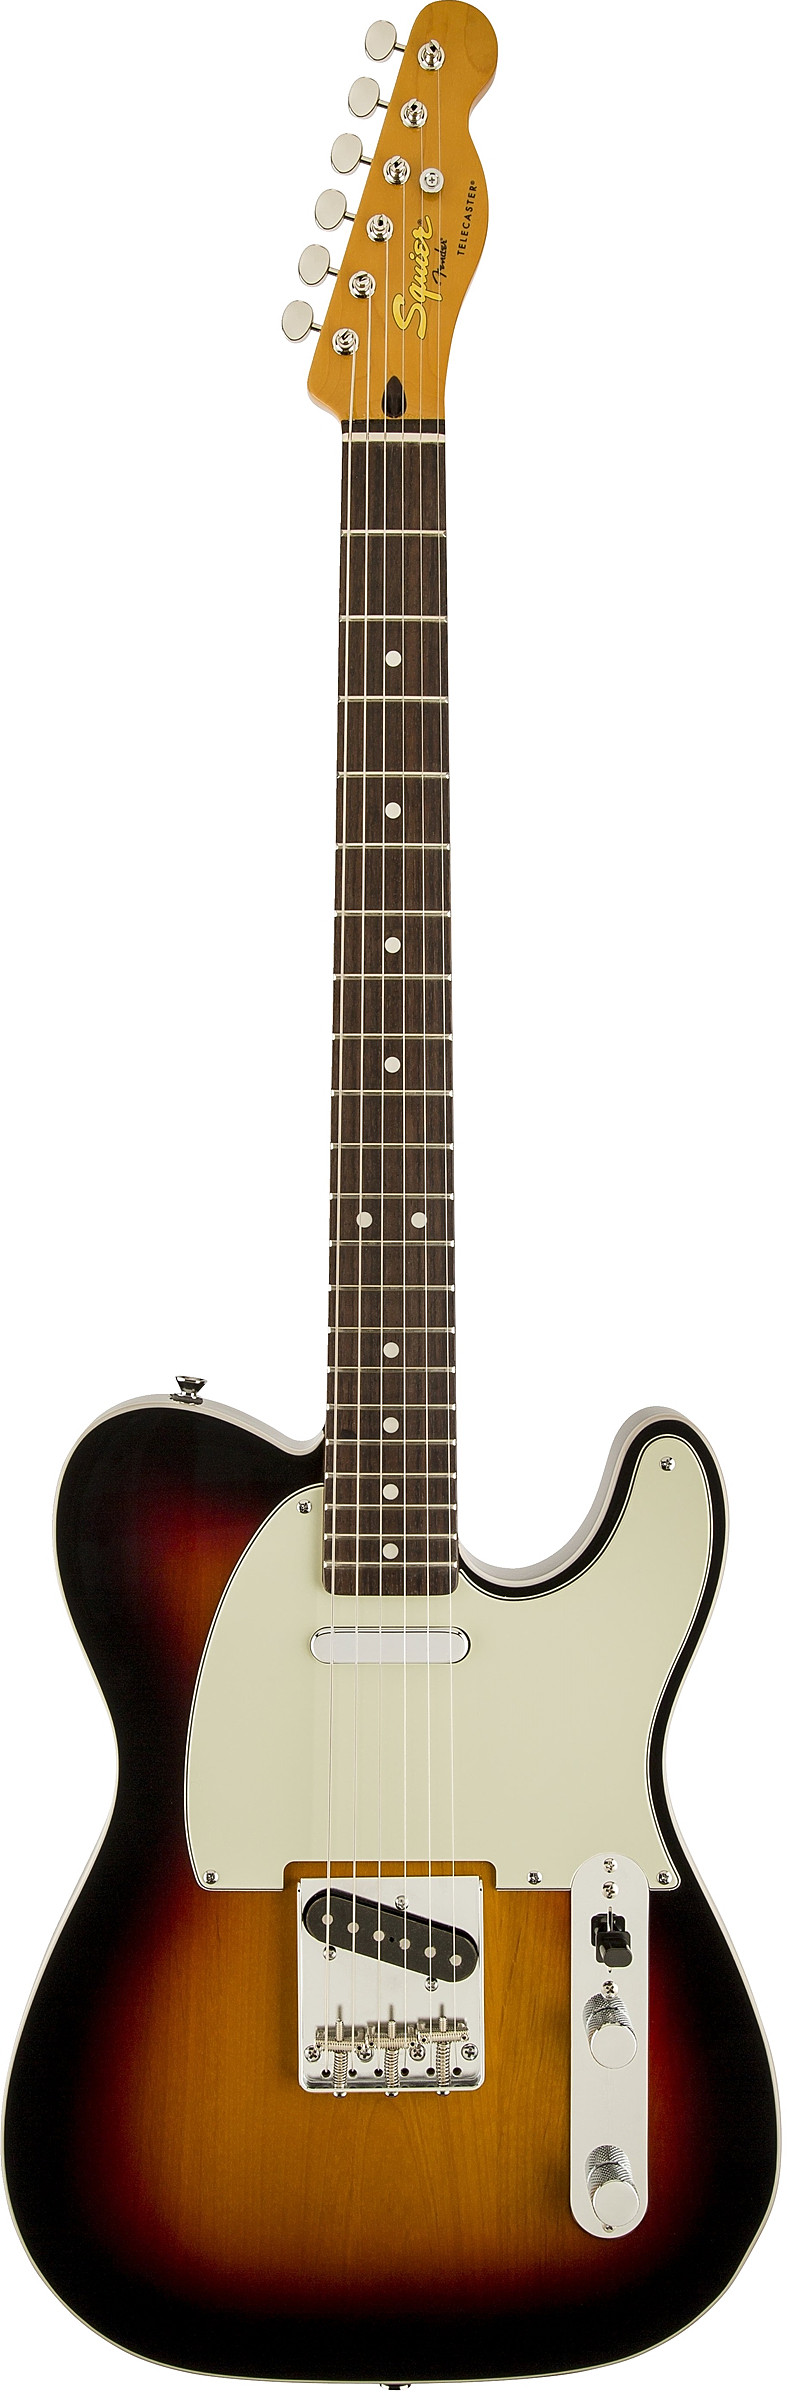 Classic Vibe Custom Telecaster by Squier by Fender